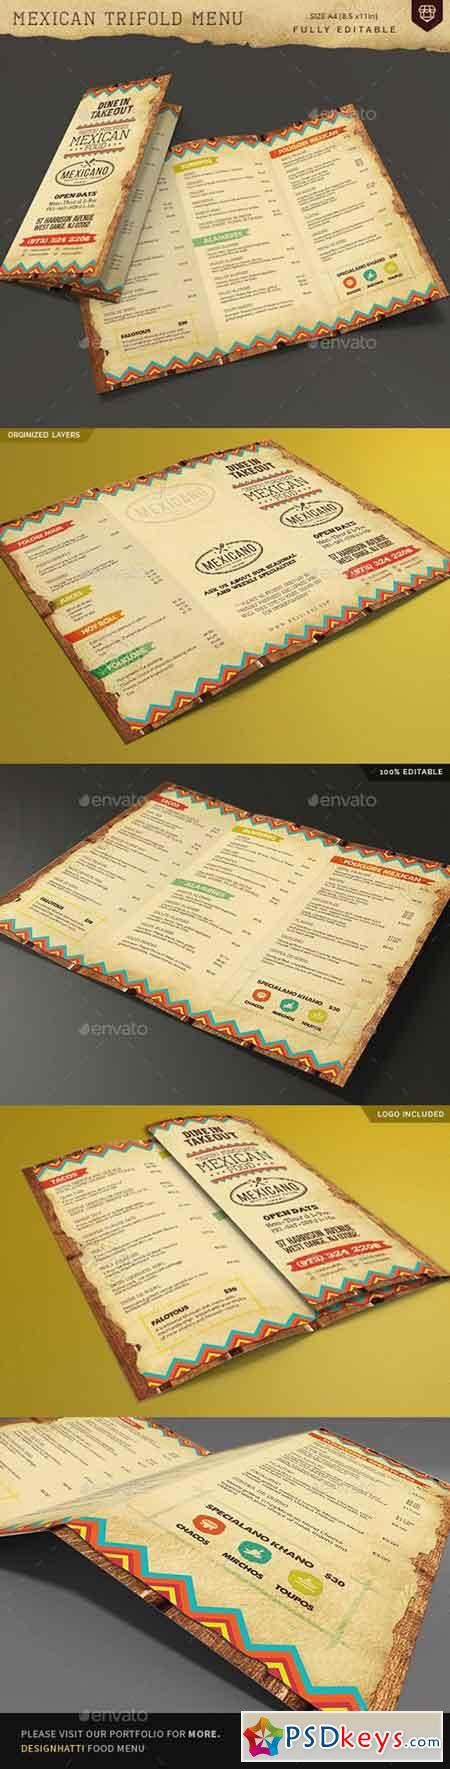 Trifold Mexican Food Menu 19108281